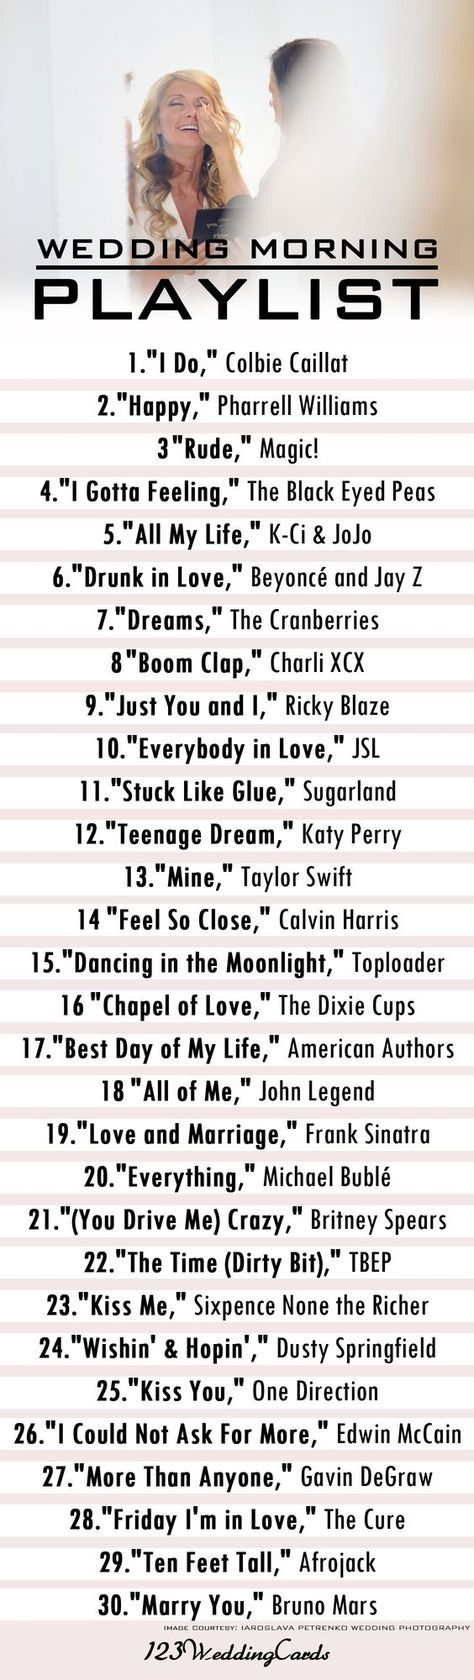 45 First Dance Songs For Every Getting Married Couple